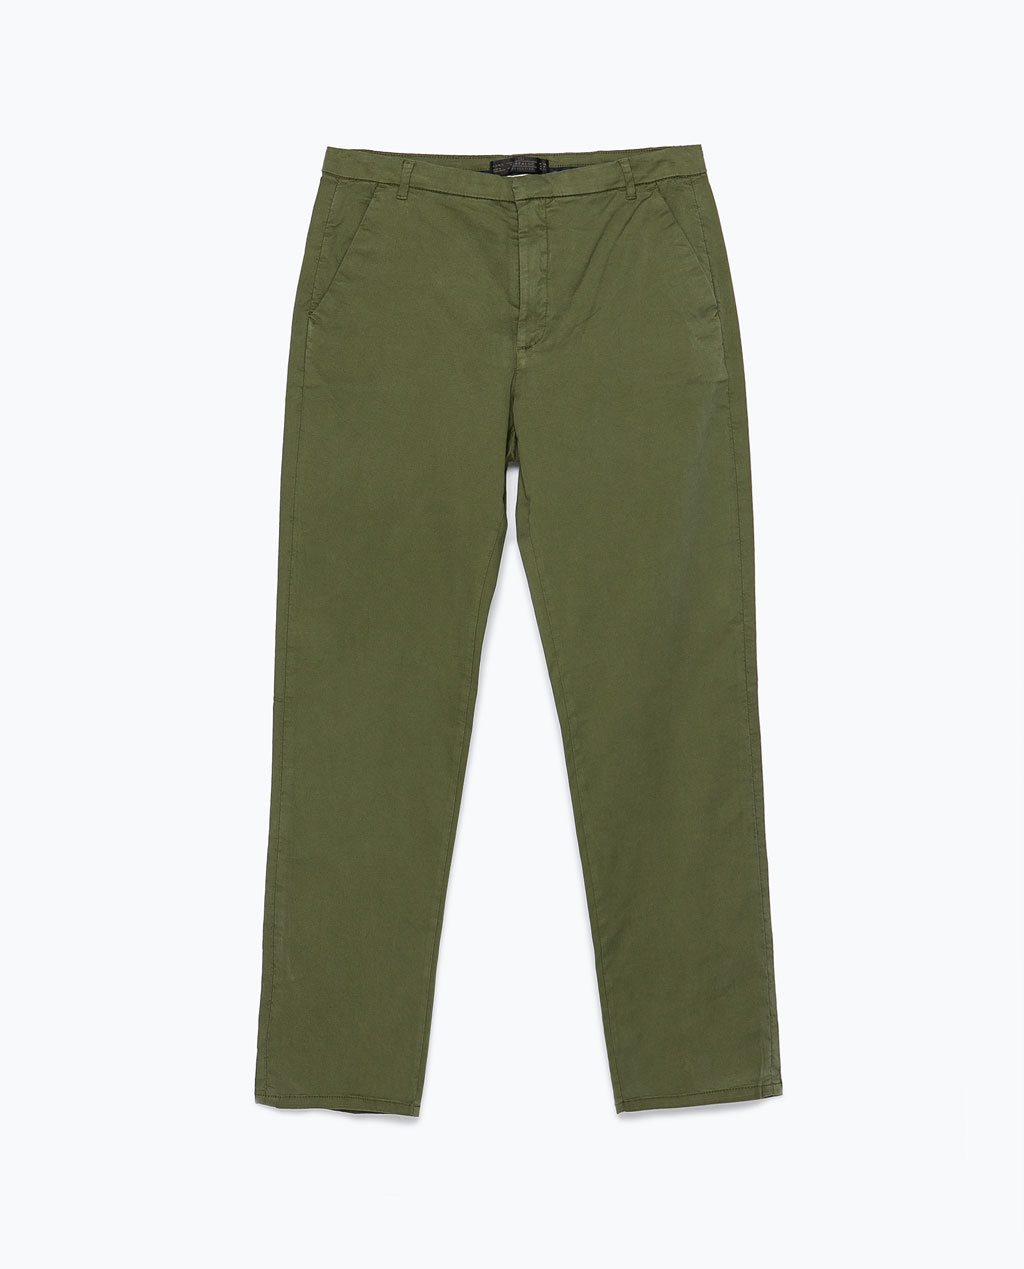 Straight Cut Trousers - pattern: plain; waist: mid/regular rise; predominant colour: khaki; occasions: casual, creative work; length: calf length; fit: straight leg; pattern type: fabric; texture group: woven light midweight; style: standard; season: s/s 2015